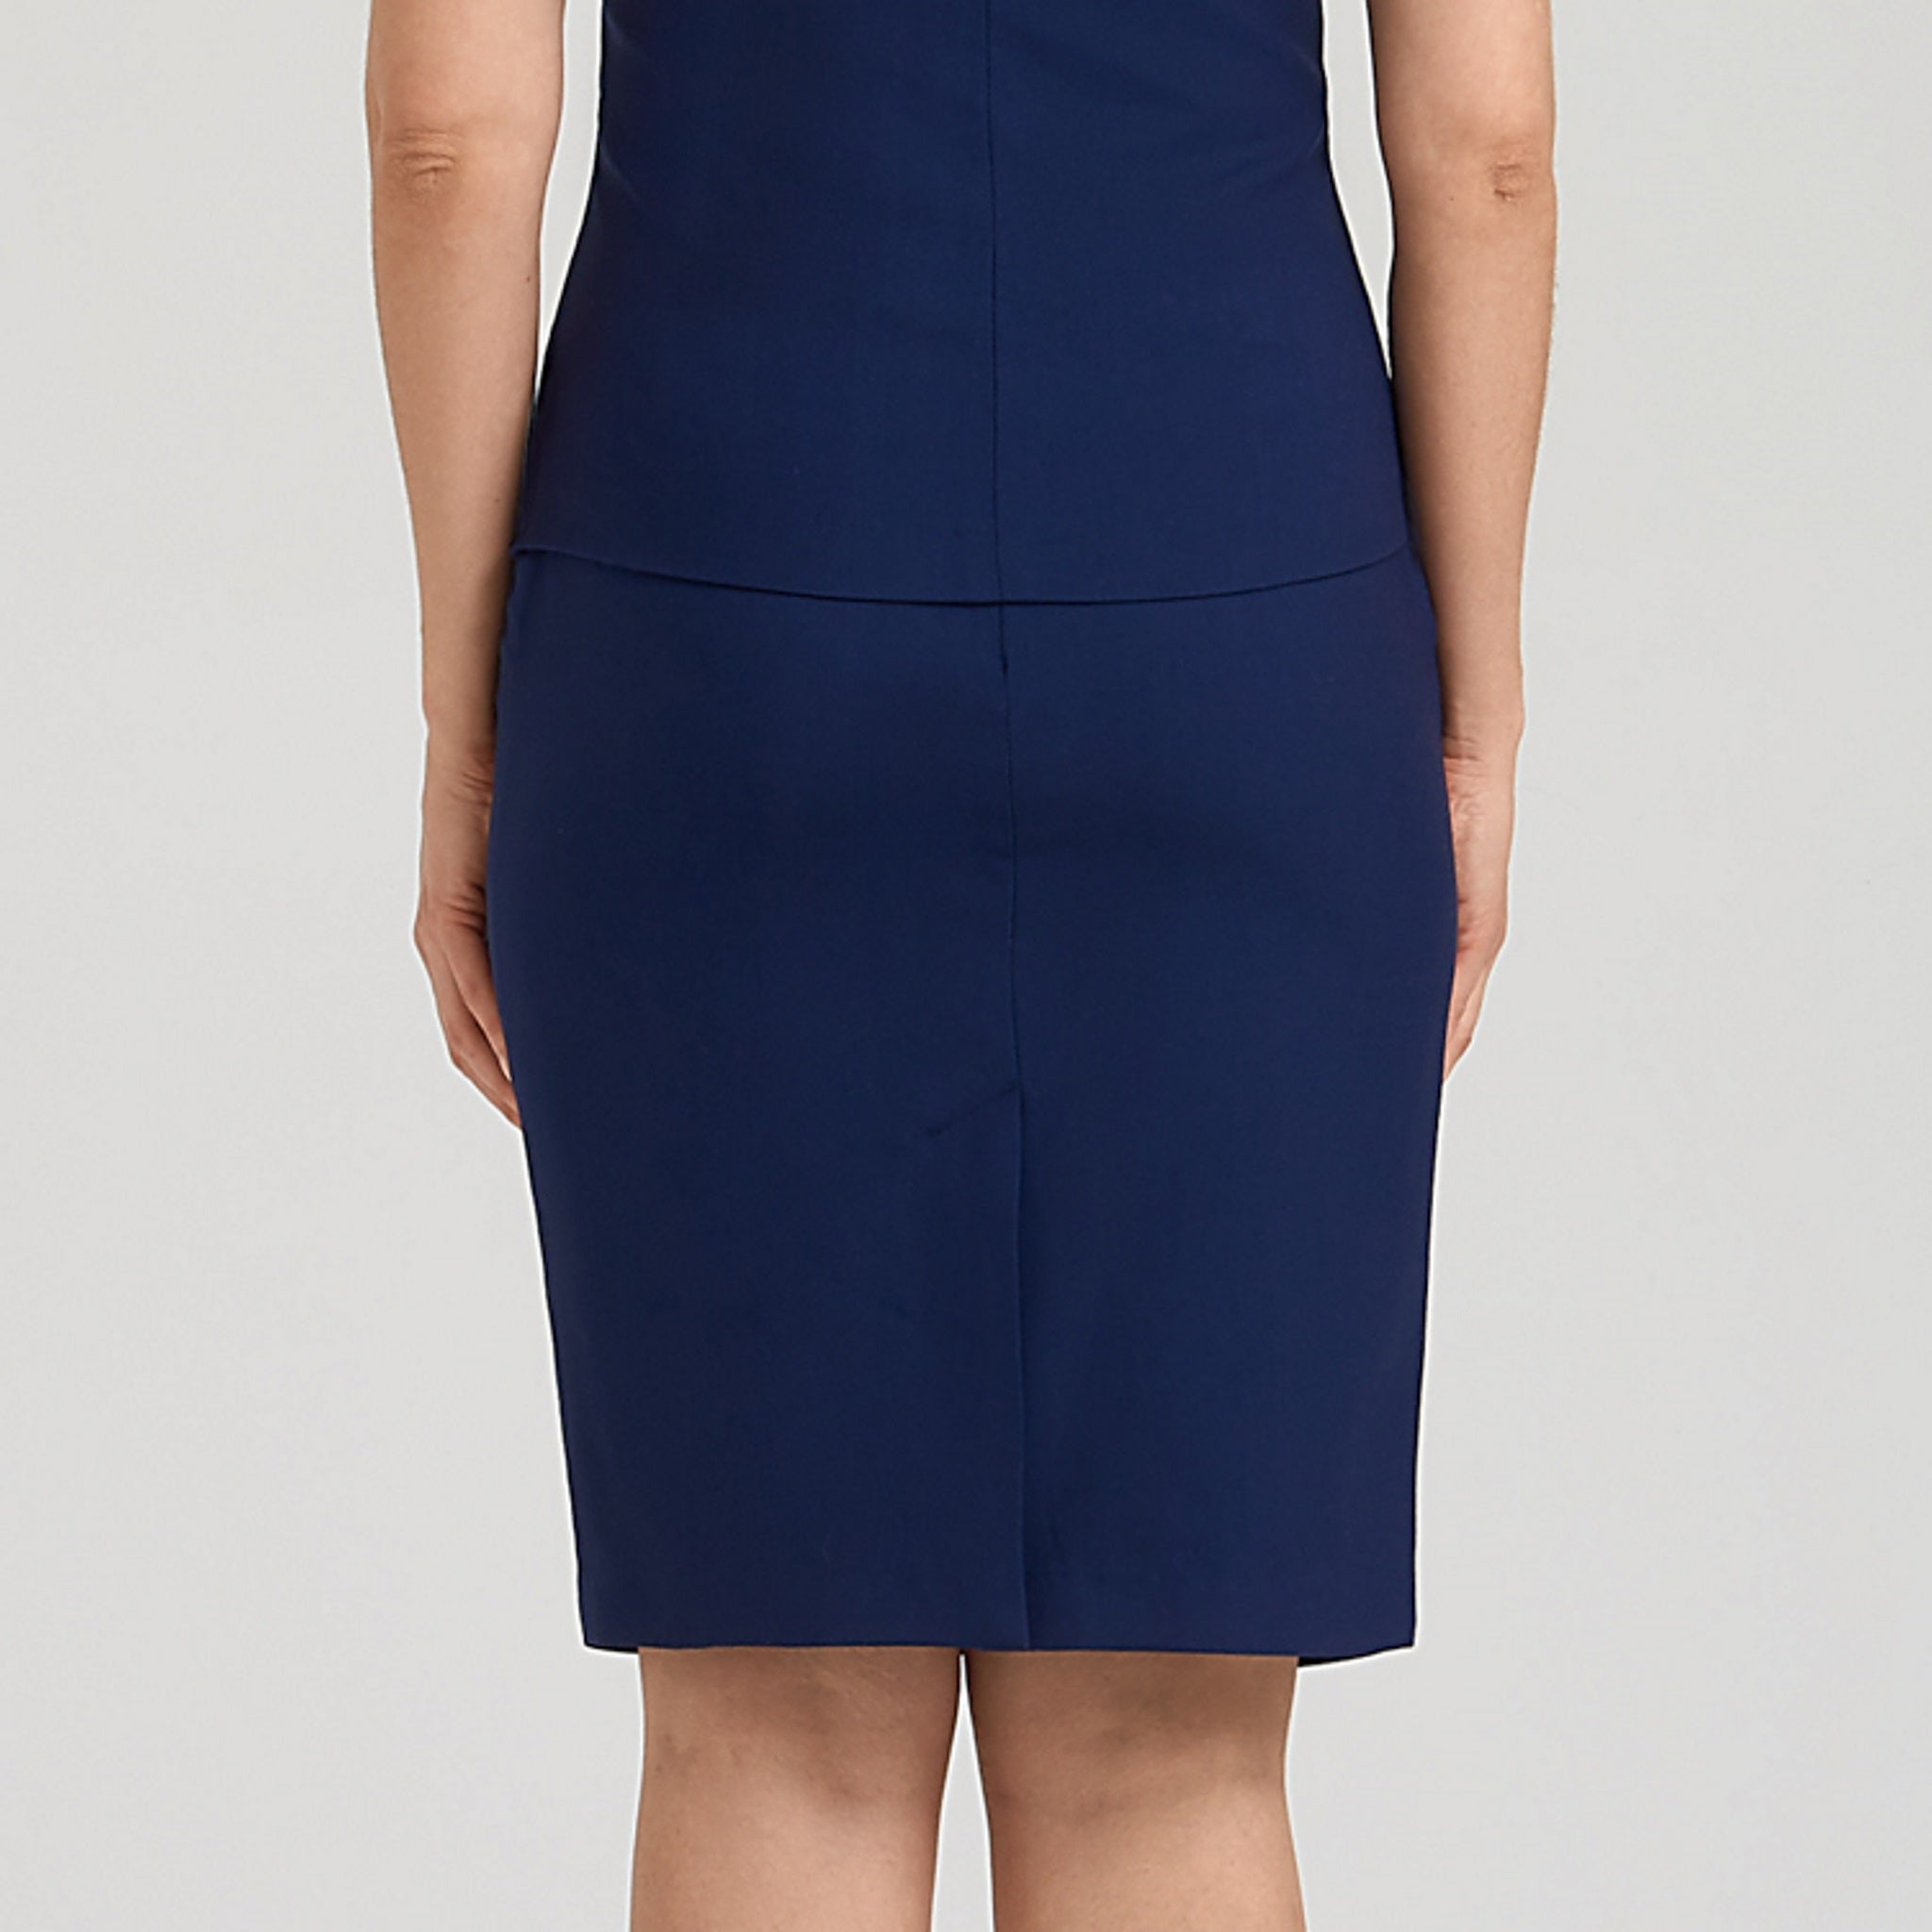 Blue pencil skirt finished for unrestricted movement and next-to-skin comfort